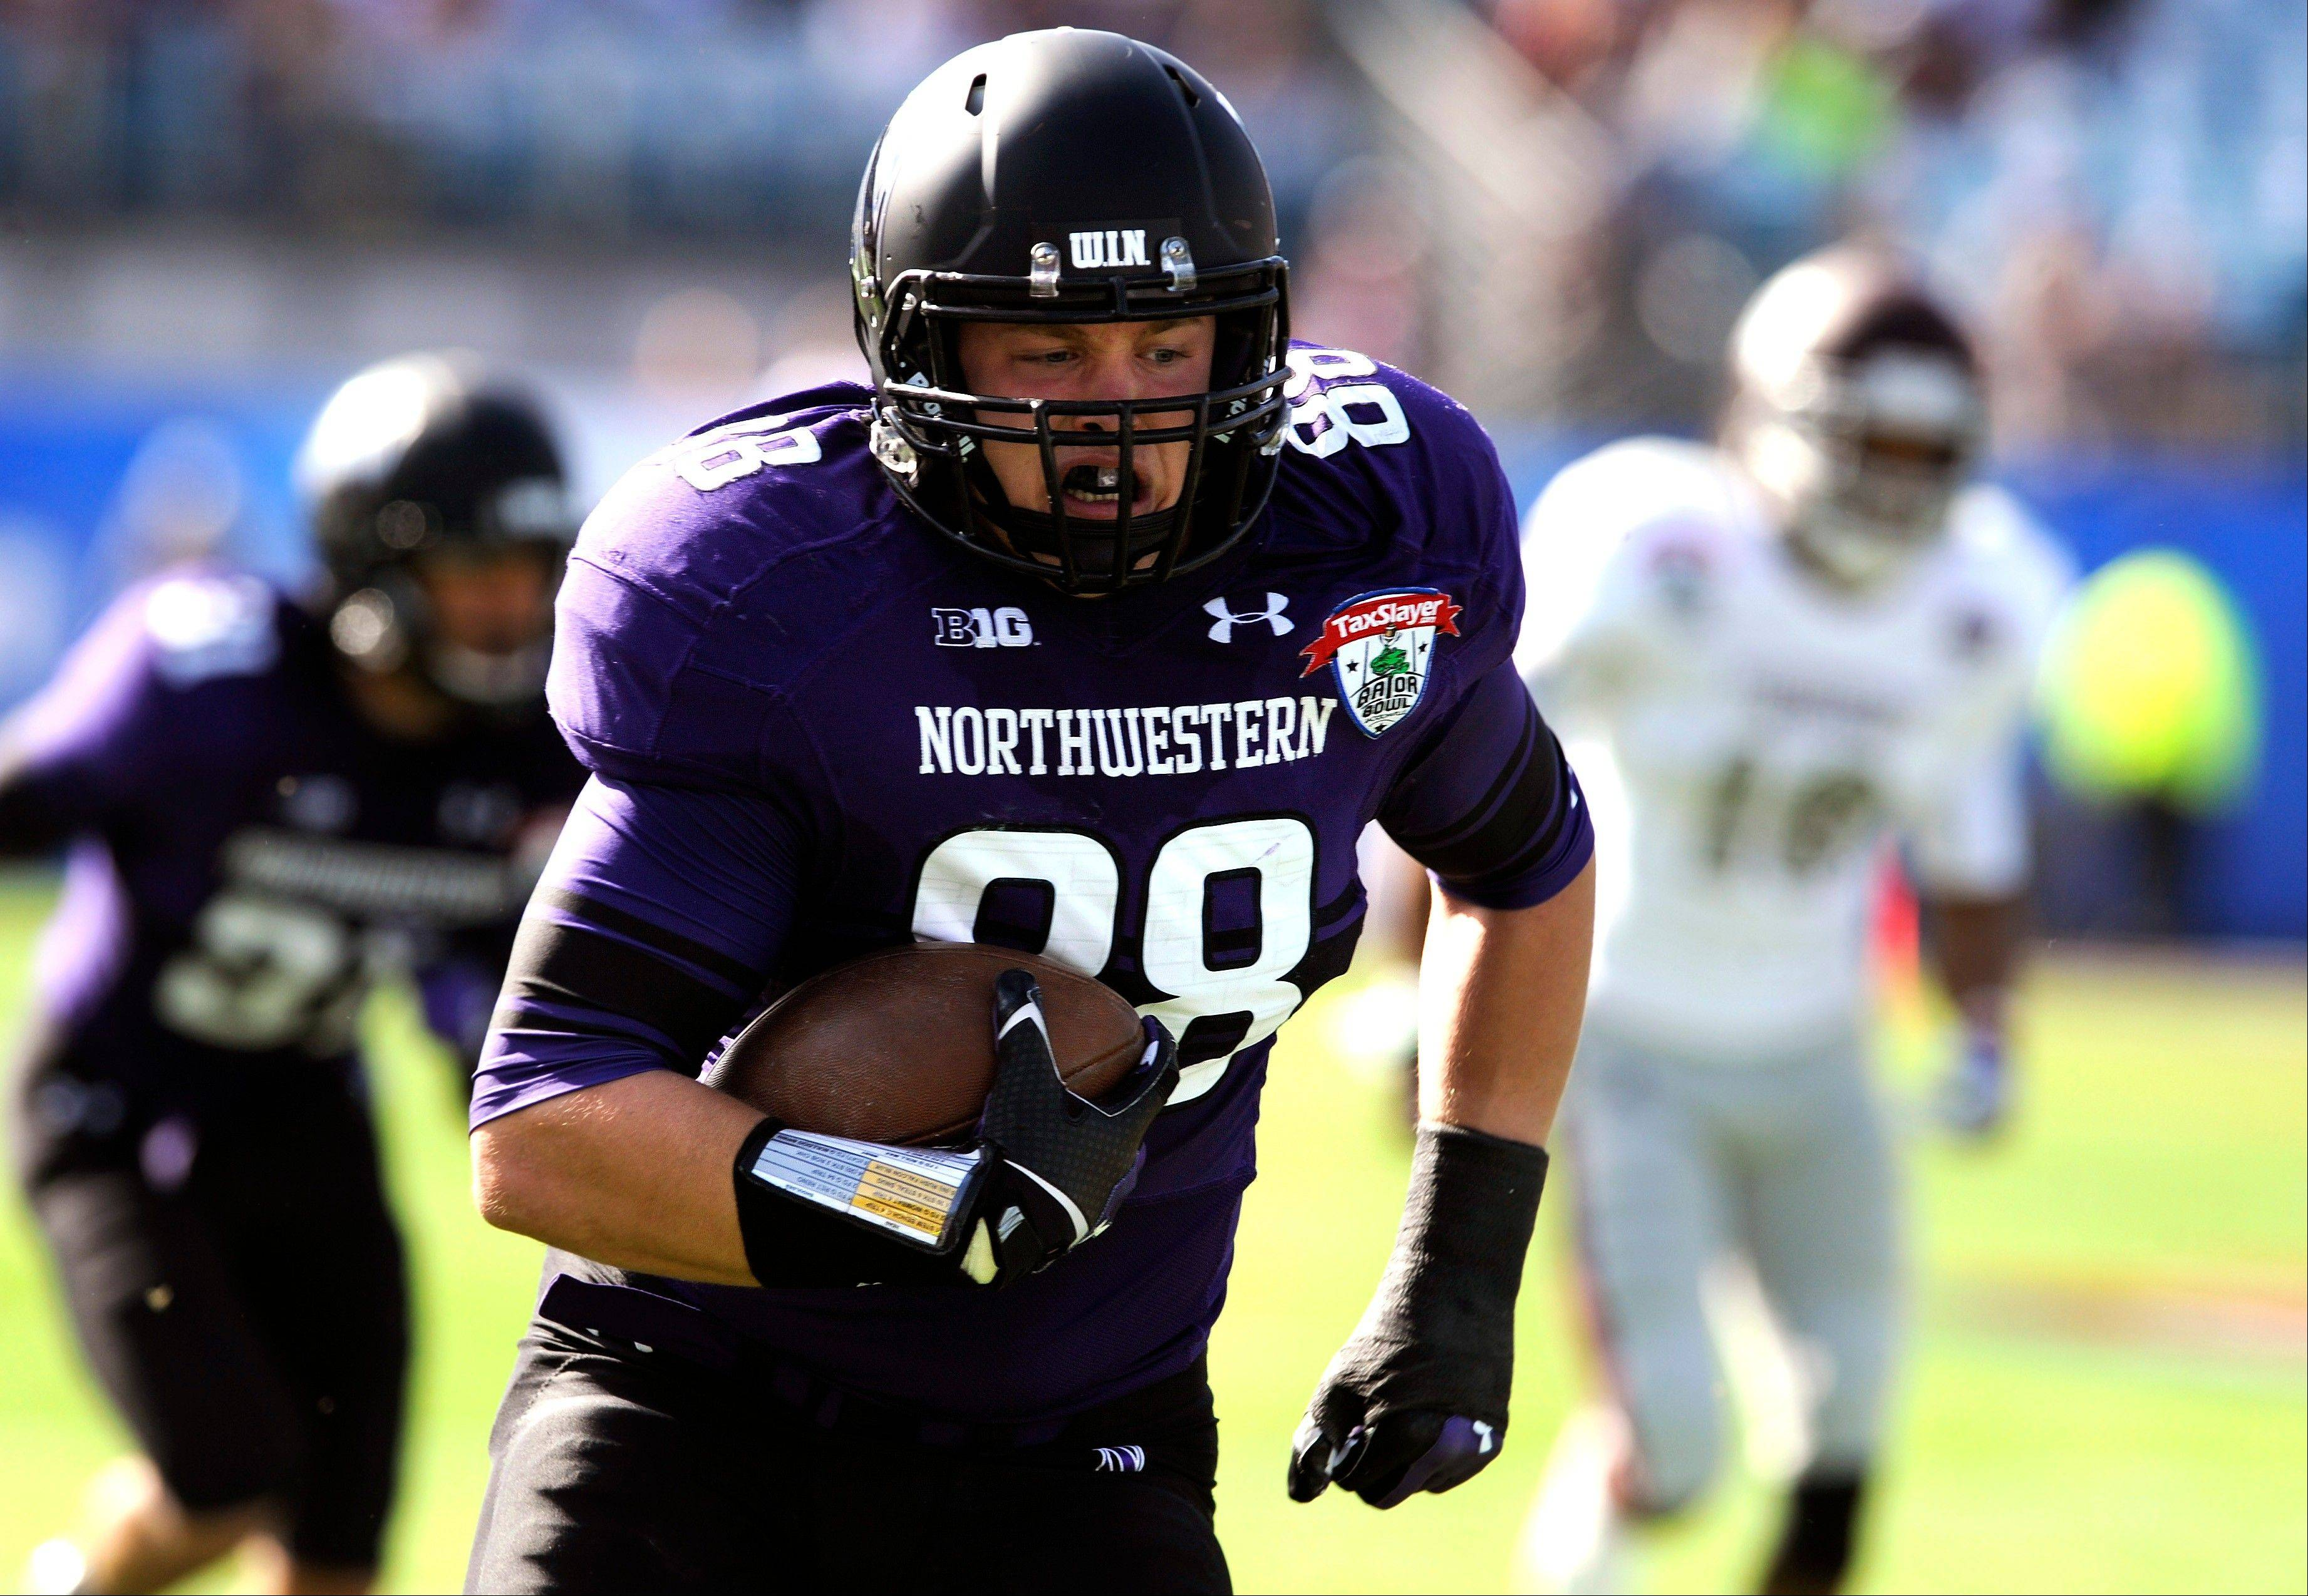 Northwestern defensive lineman Quentin Williams (88) returns an interception for a touchdown during the first half of the Gator Bowl NCAA college football game against Mississippi State Tuesday in Jacksonville, Fla.